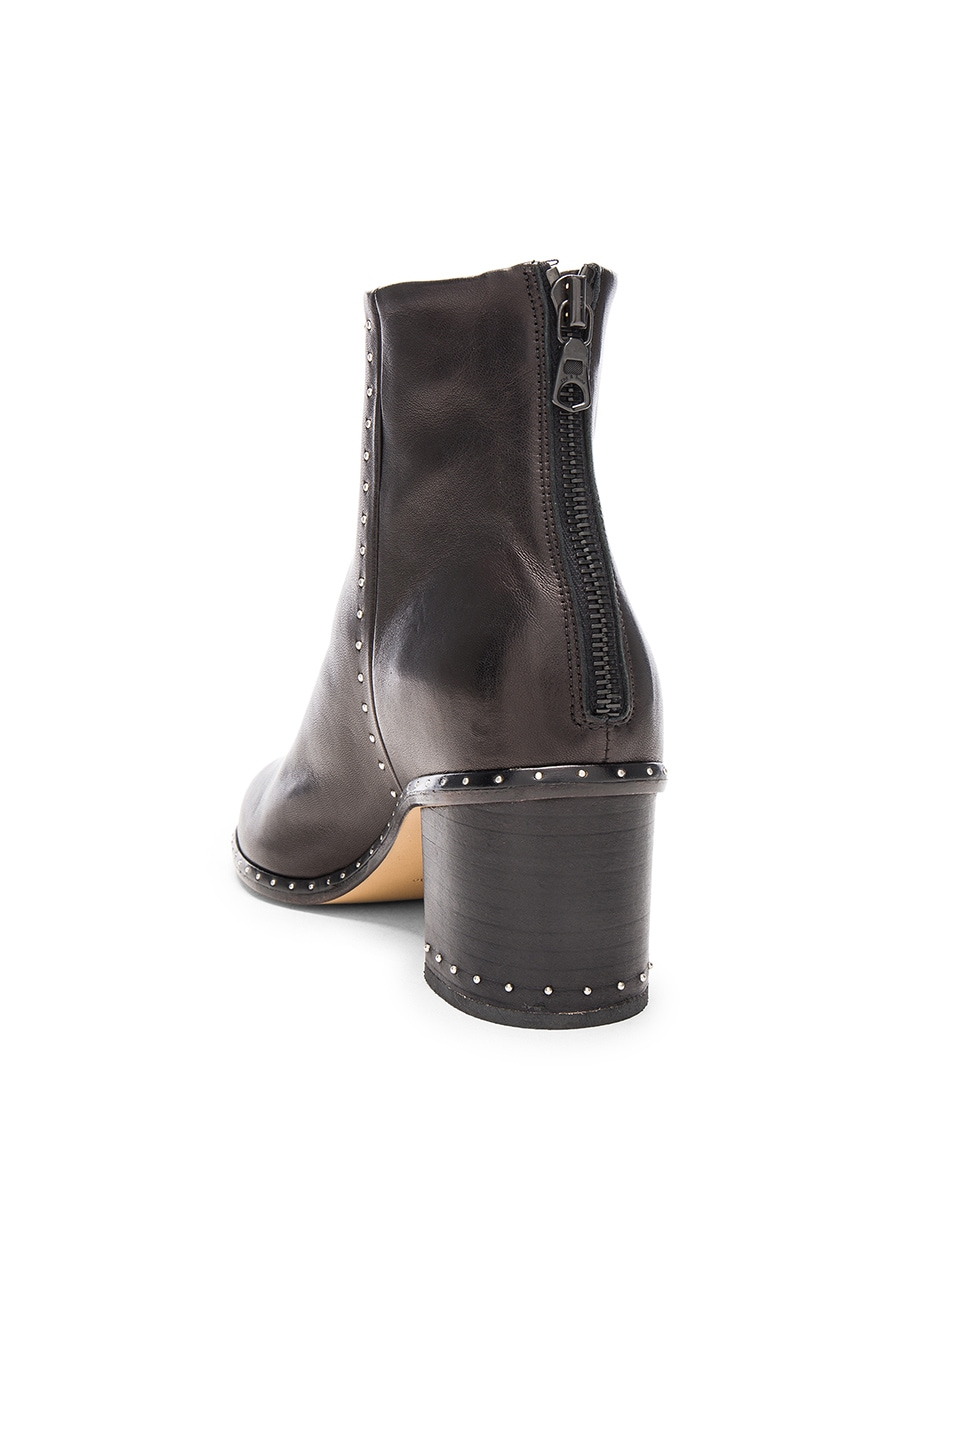 Image 3 of Rag & Bone Leather Willow Stud Boots in Black